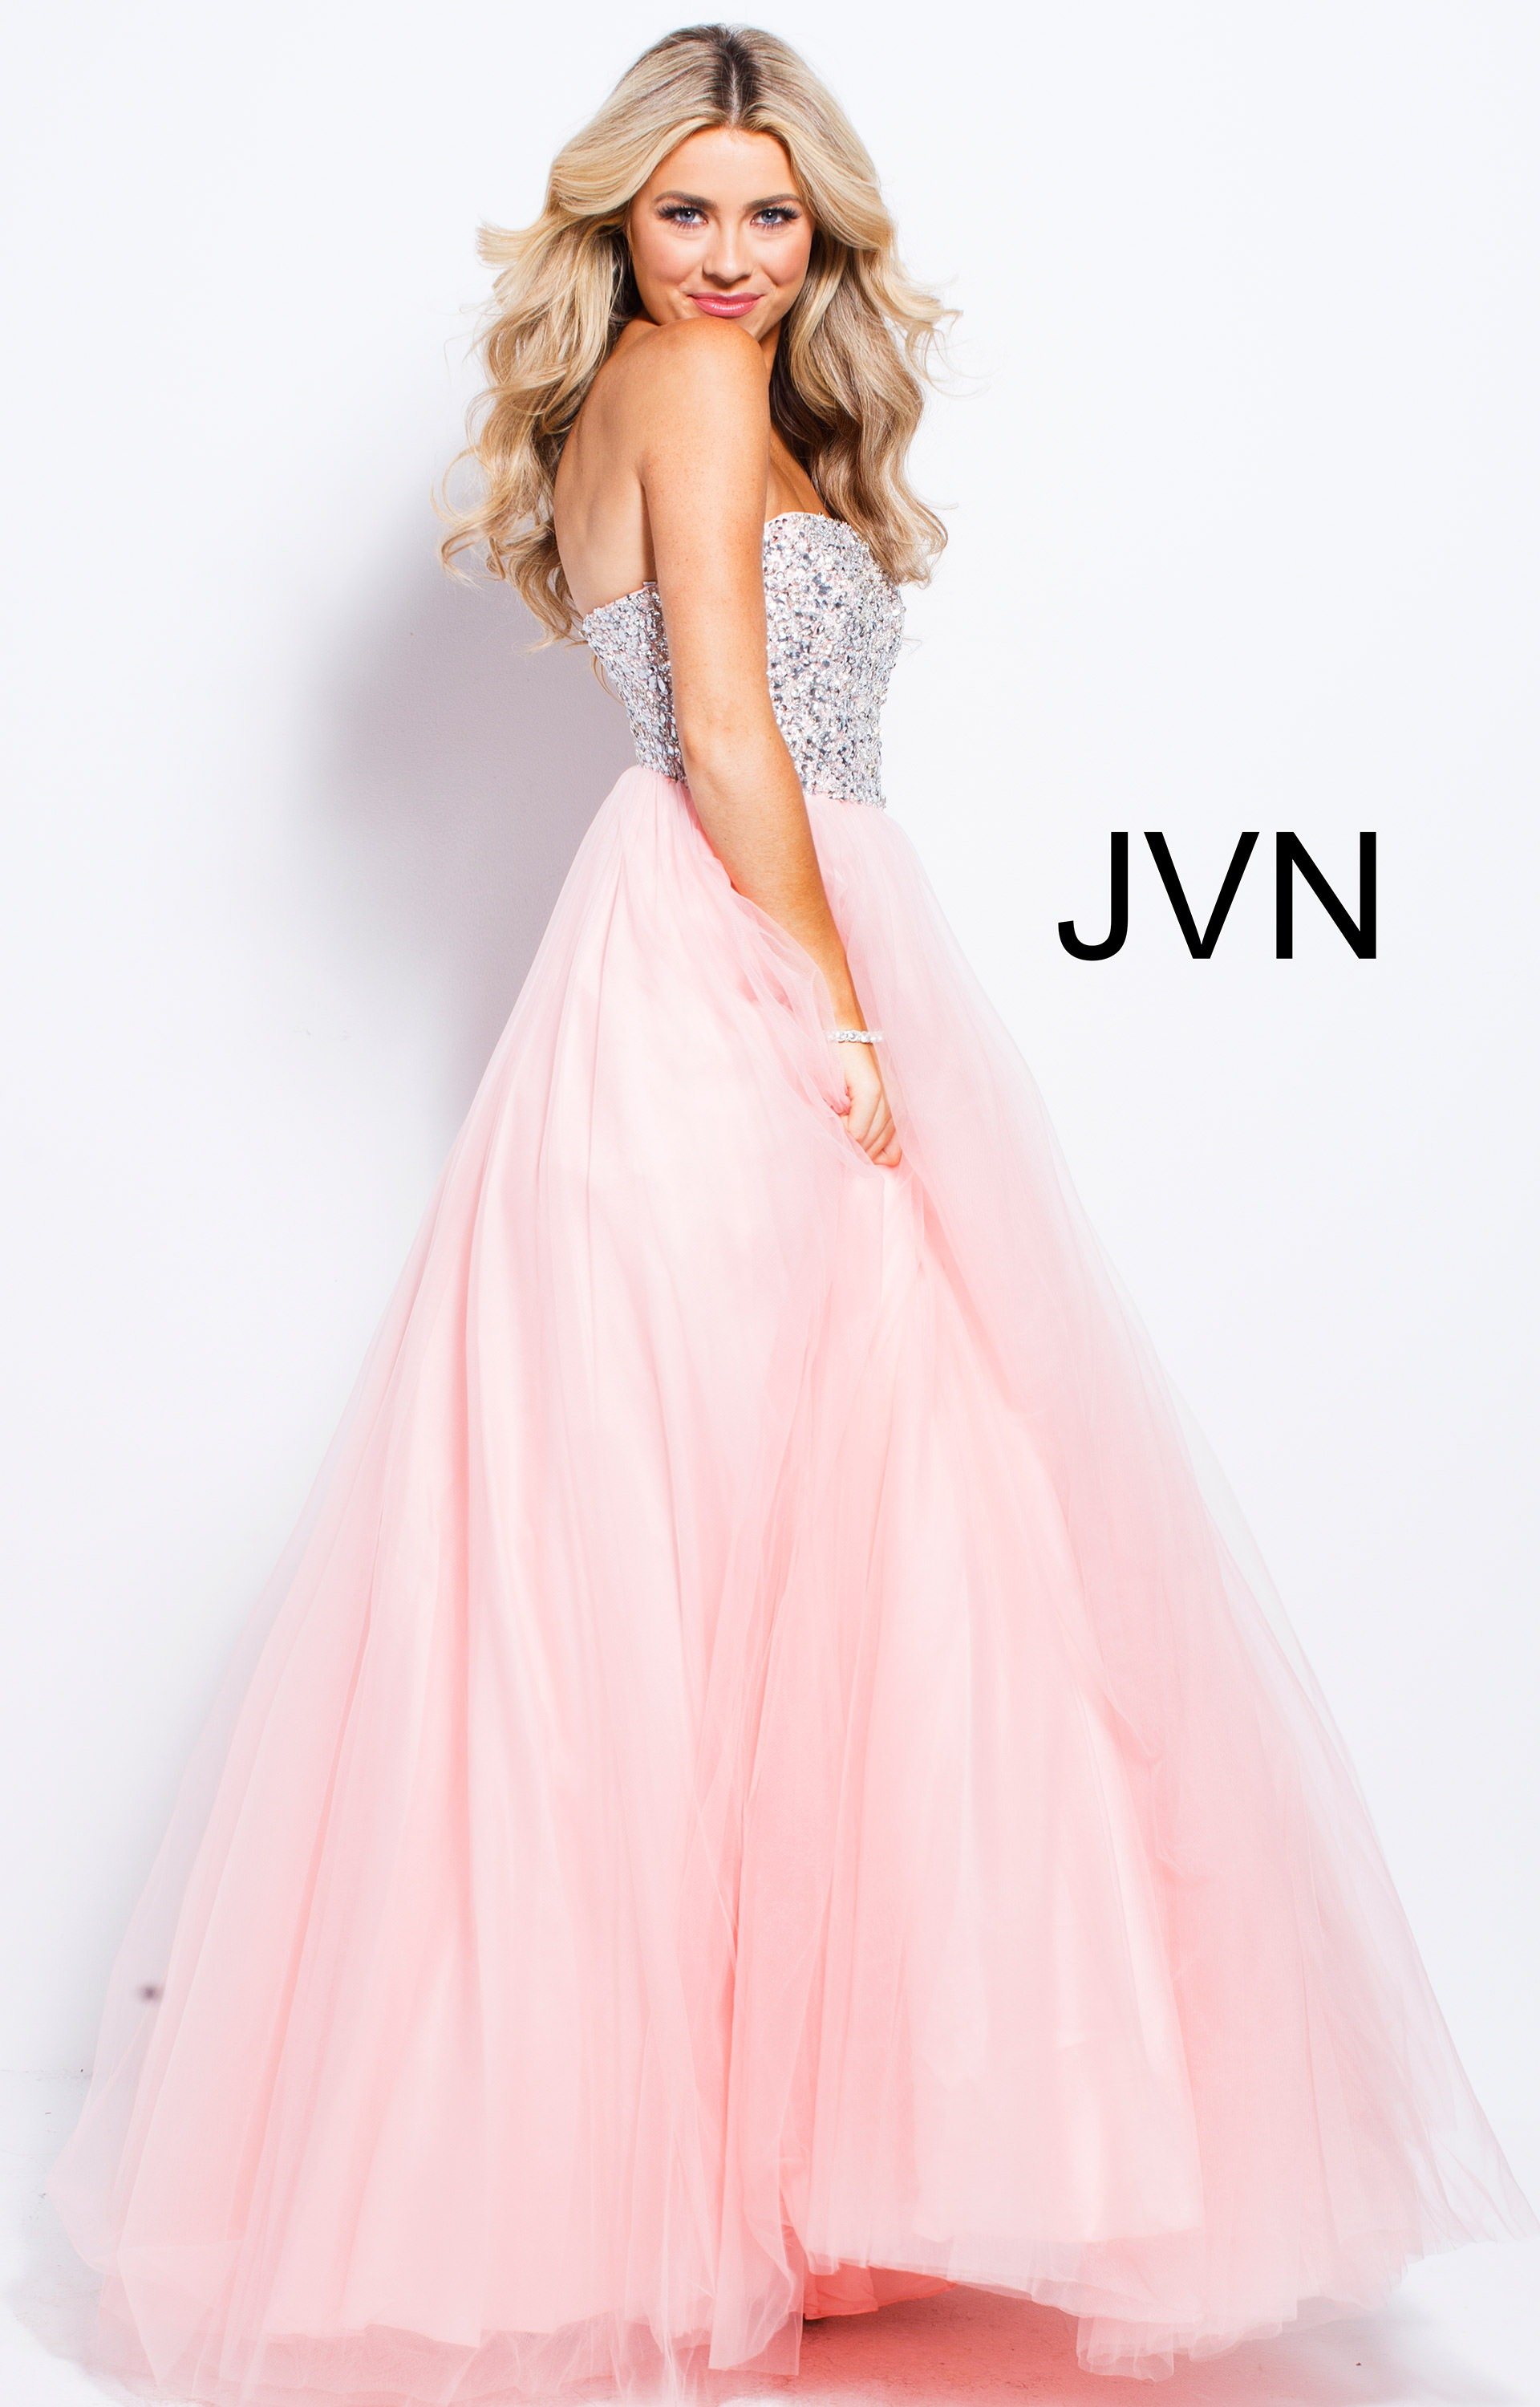 Jovani jvn52131 - Strapless Beaded Sequins Tulle Ball Gown